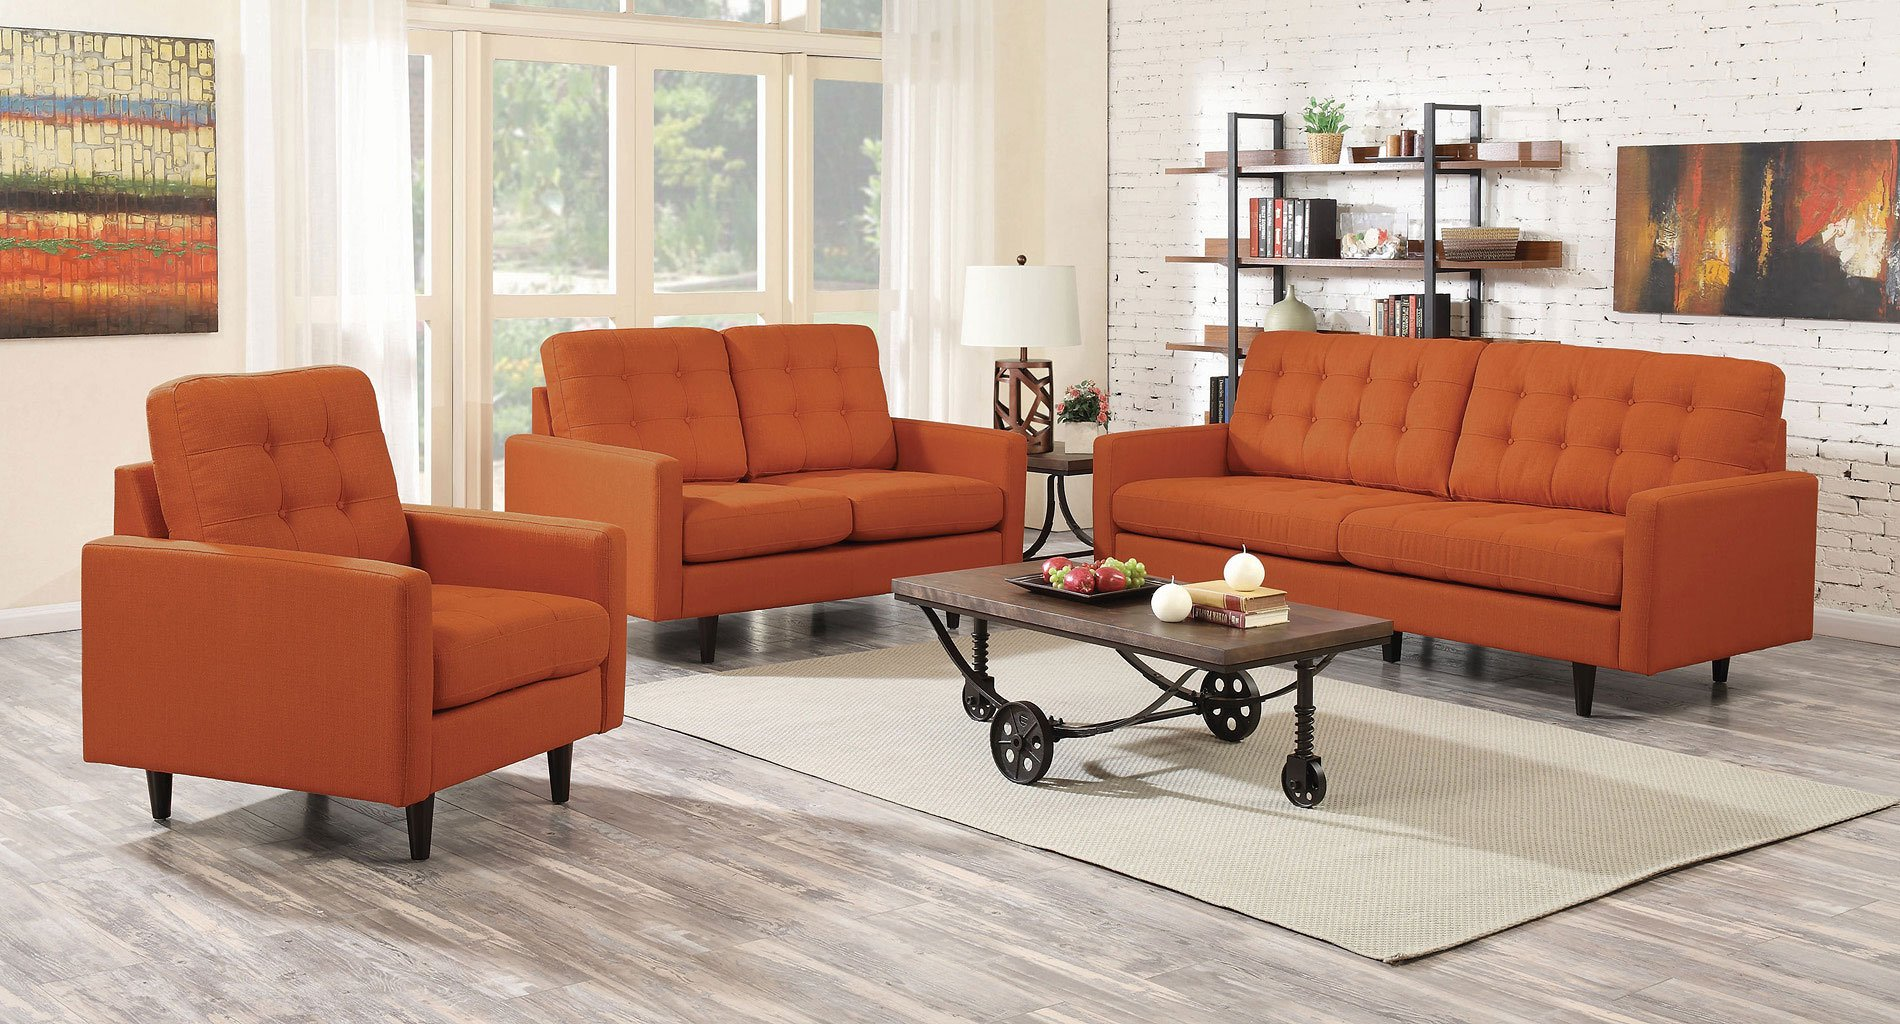 living room furniture orange county kesson living room set orange living room sets 22072